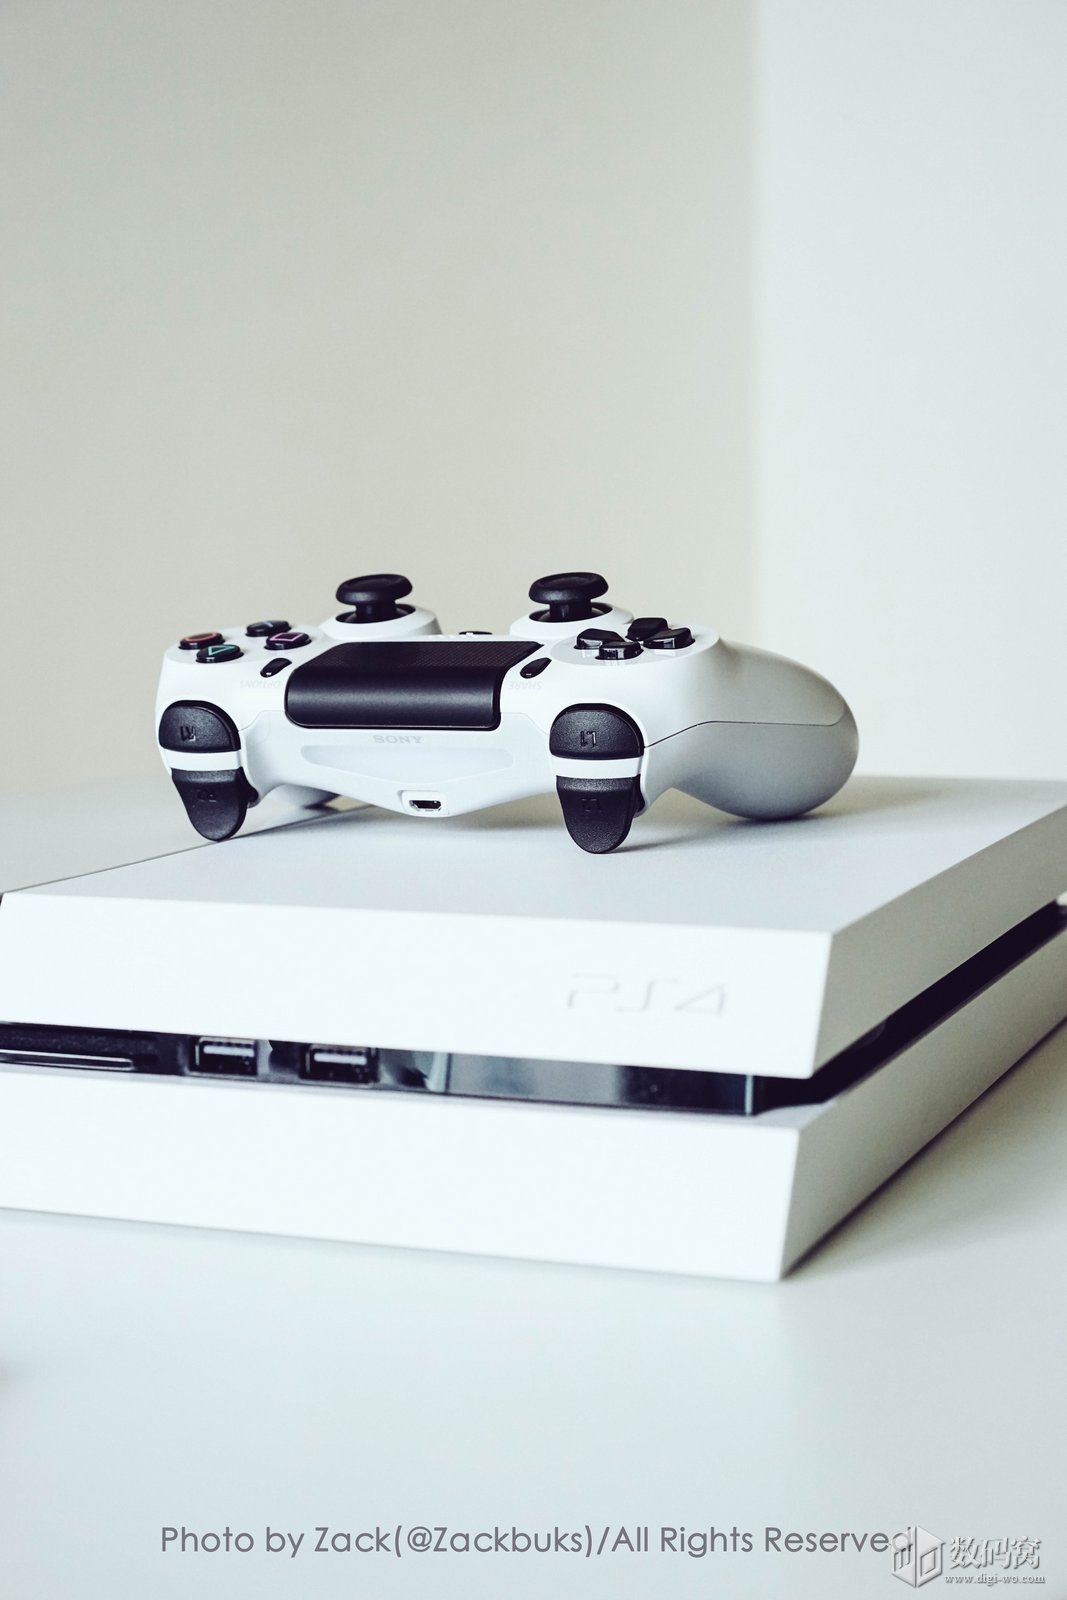 White and Black PS4